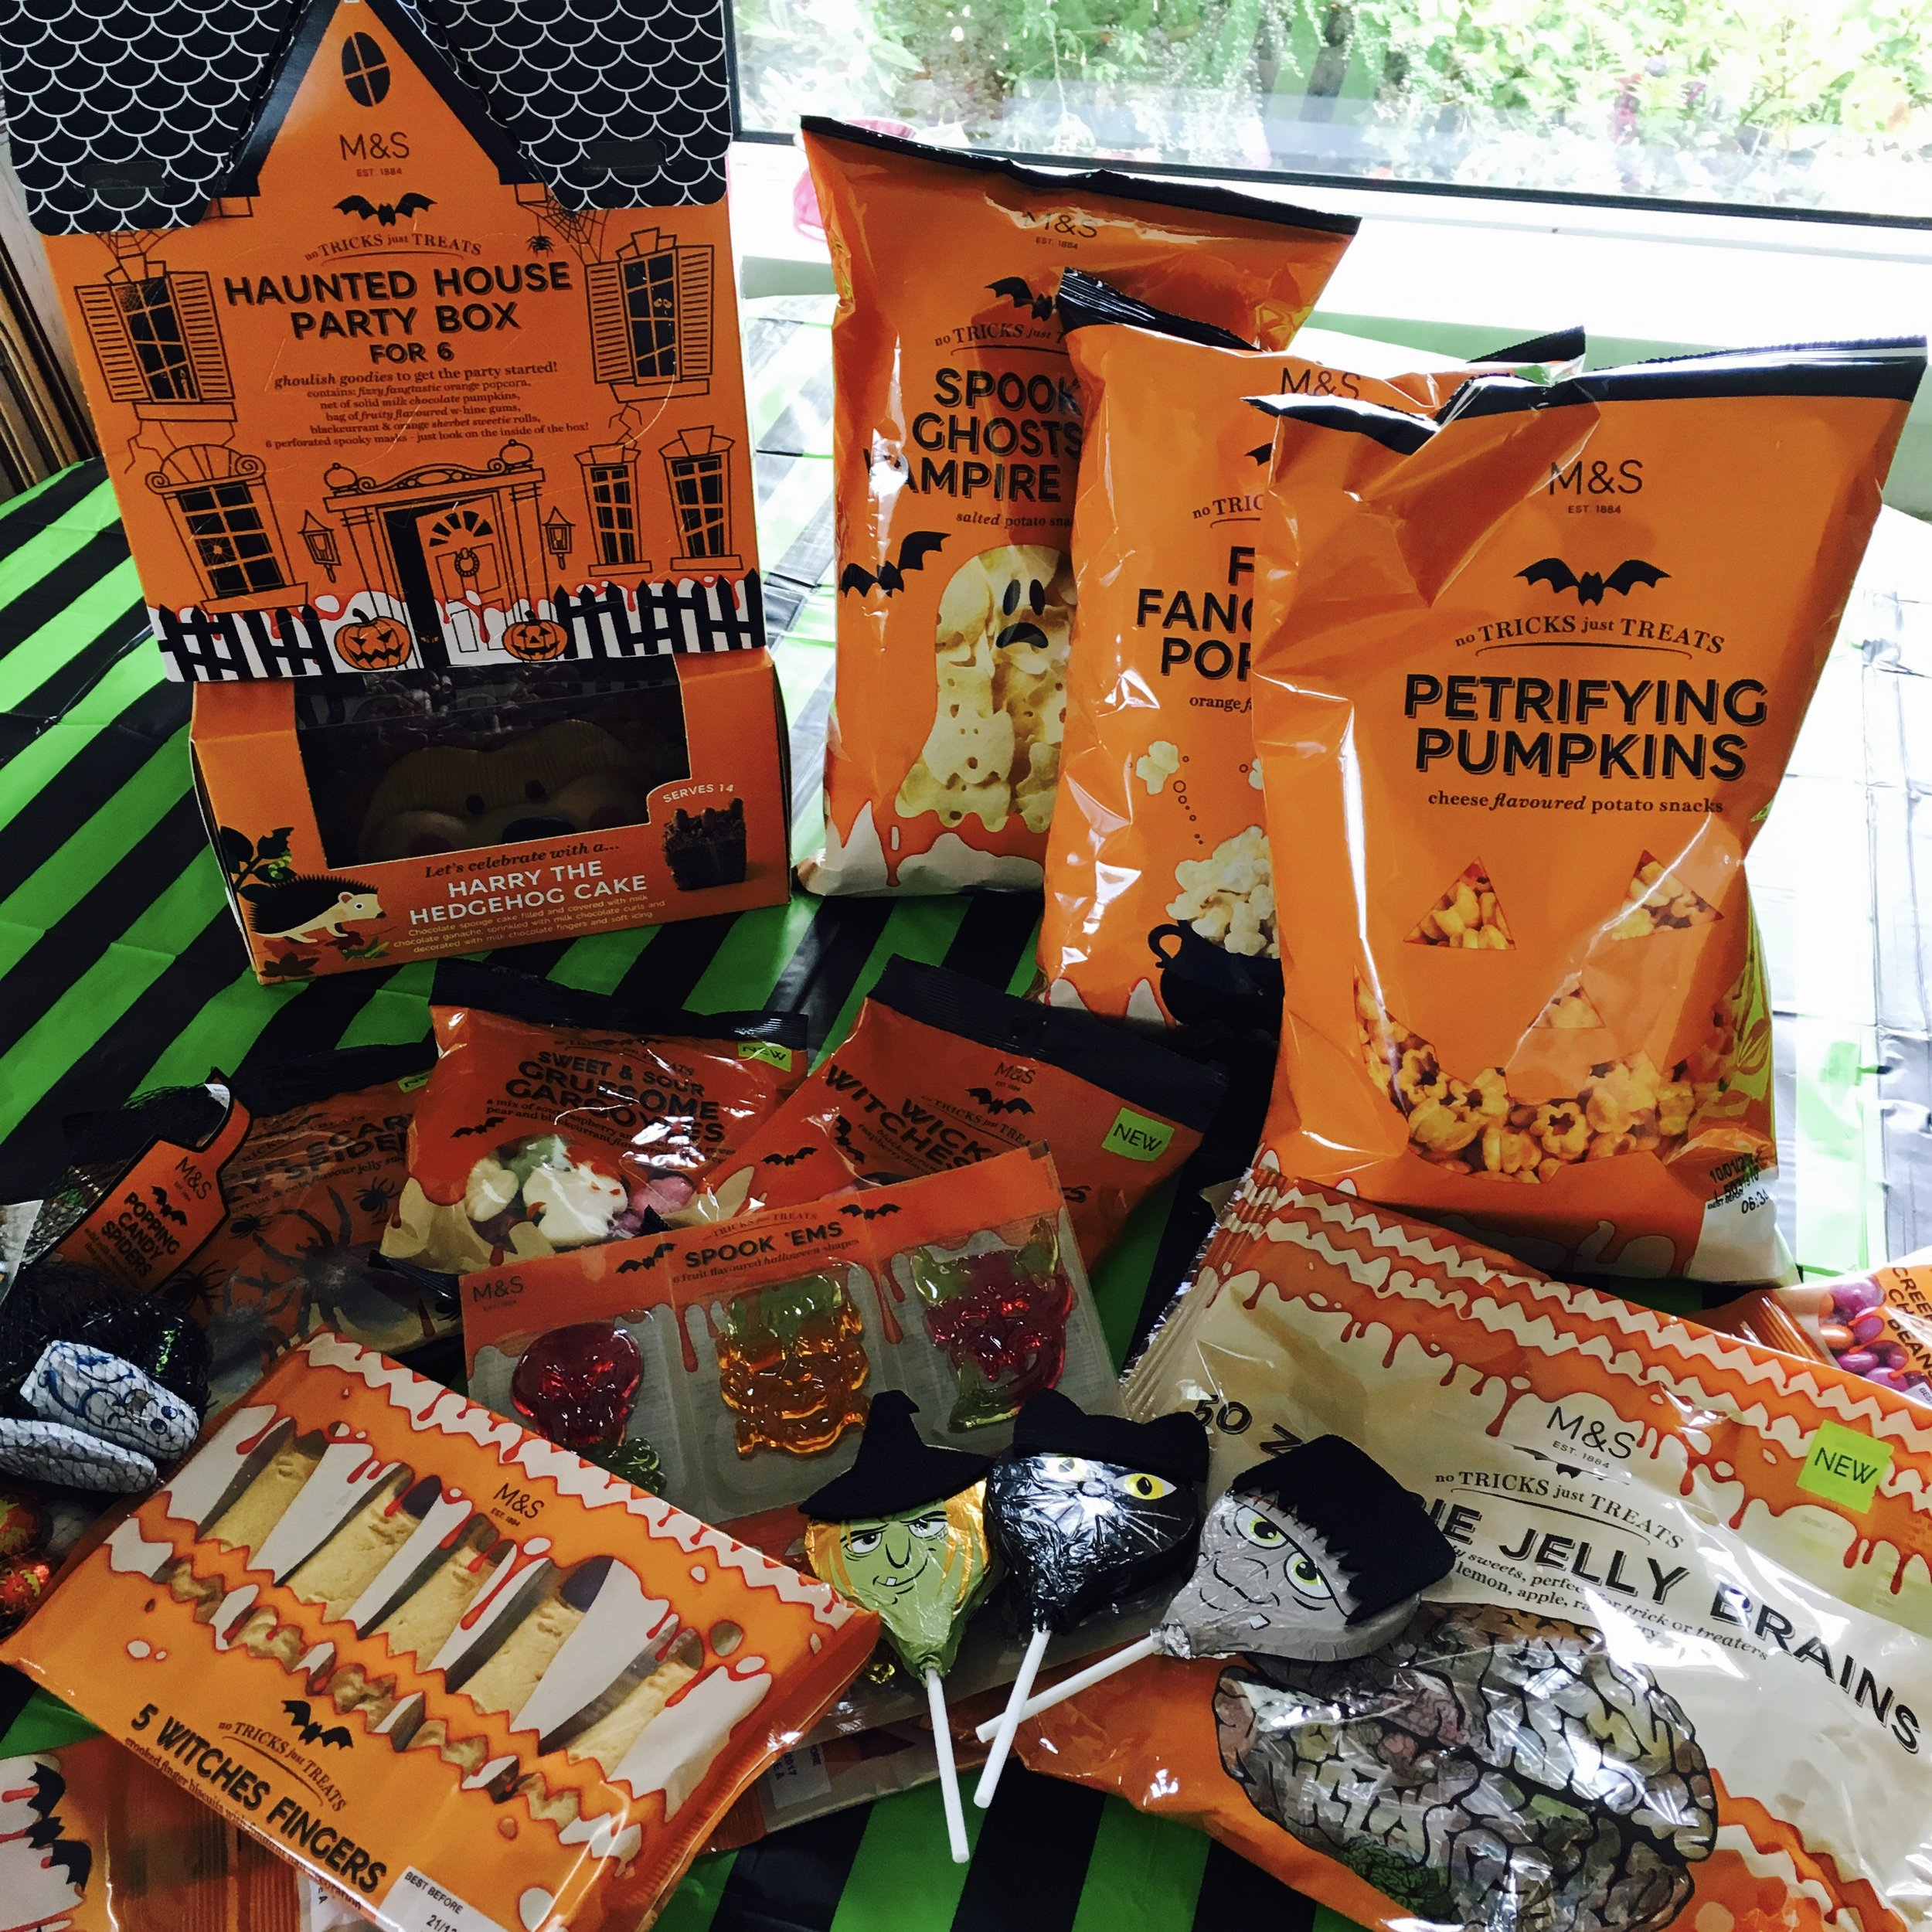 3 for 2 on all the Halloween goodies, so you'll have bucket loads of sweetie swag for the inevitable trick or treat brigades heading to your doorstep soon